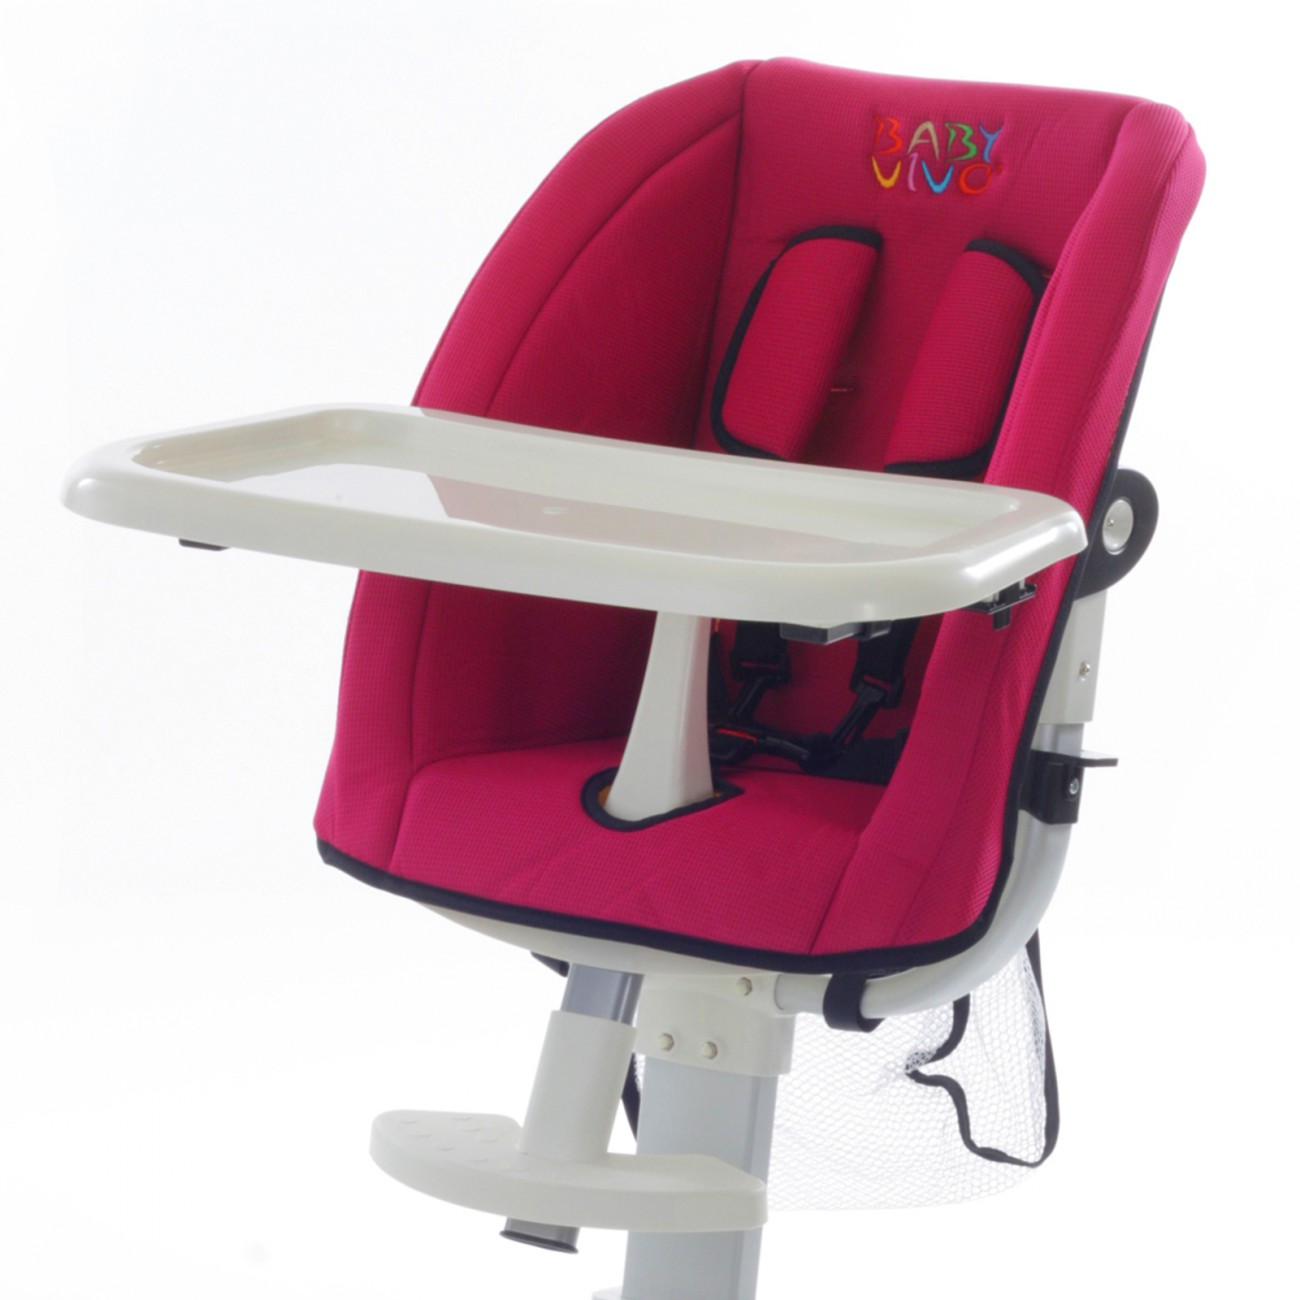 chair covers for baby rent chiavari chairs replacement cover high highchair feeding seat